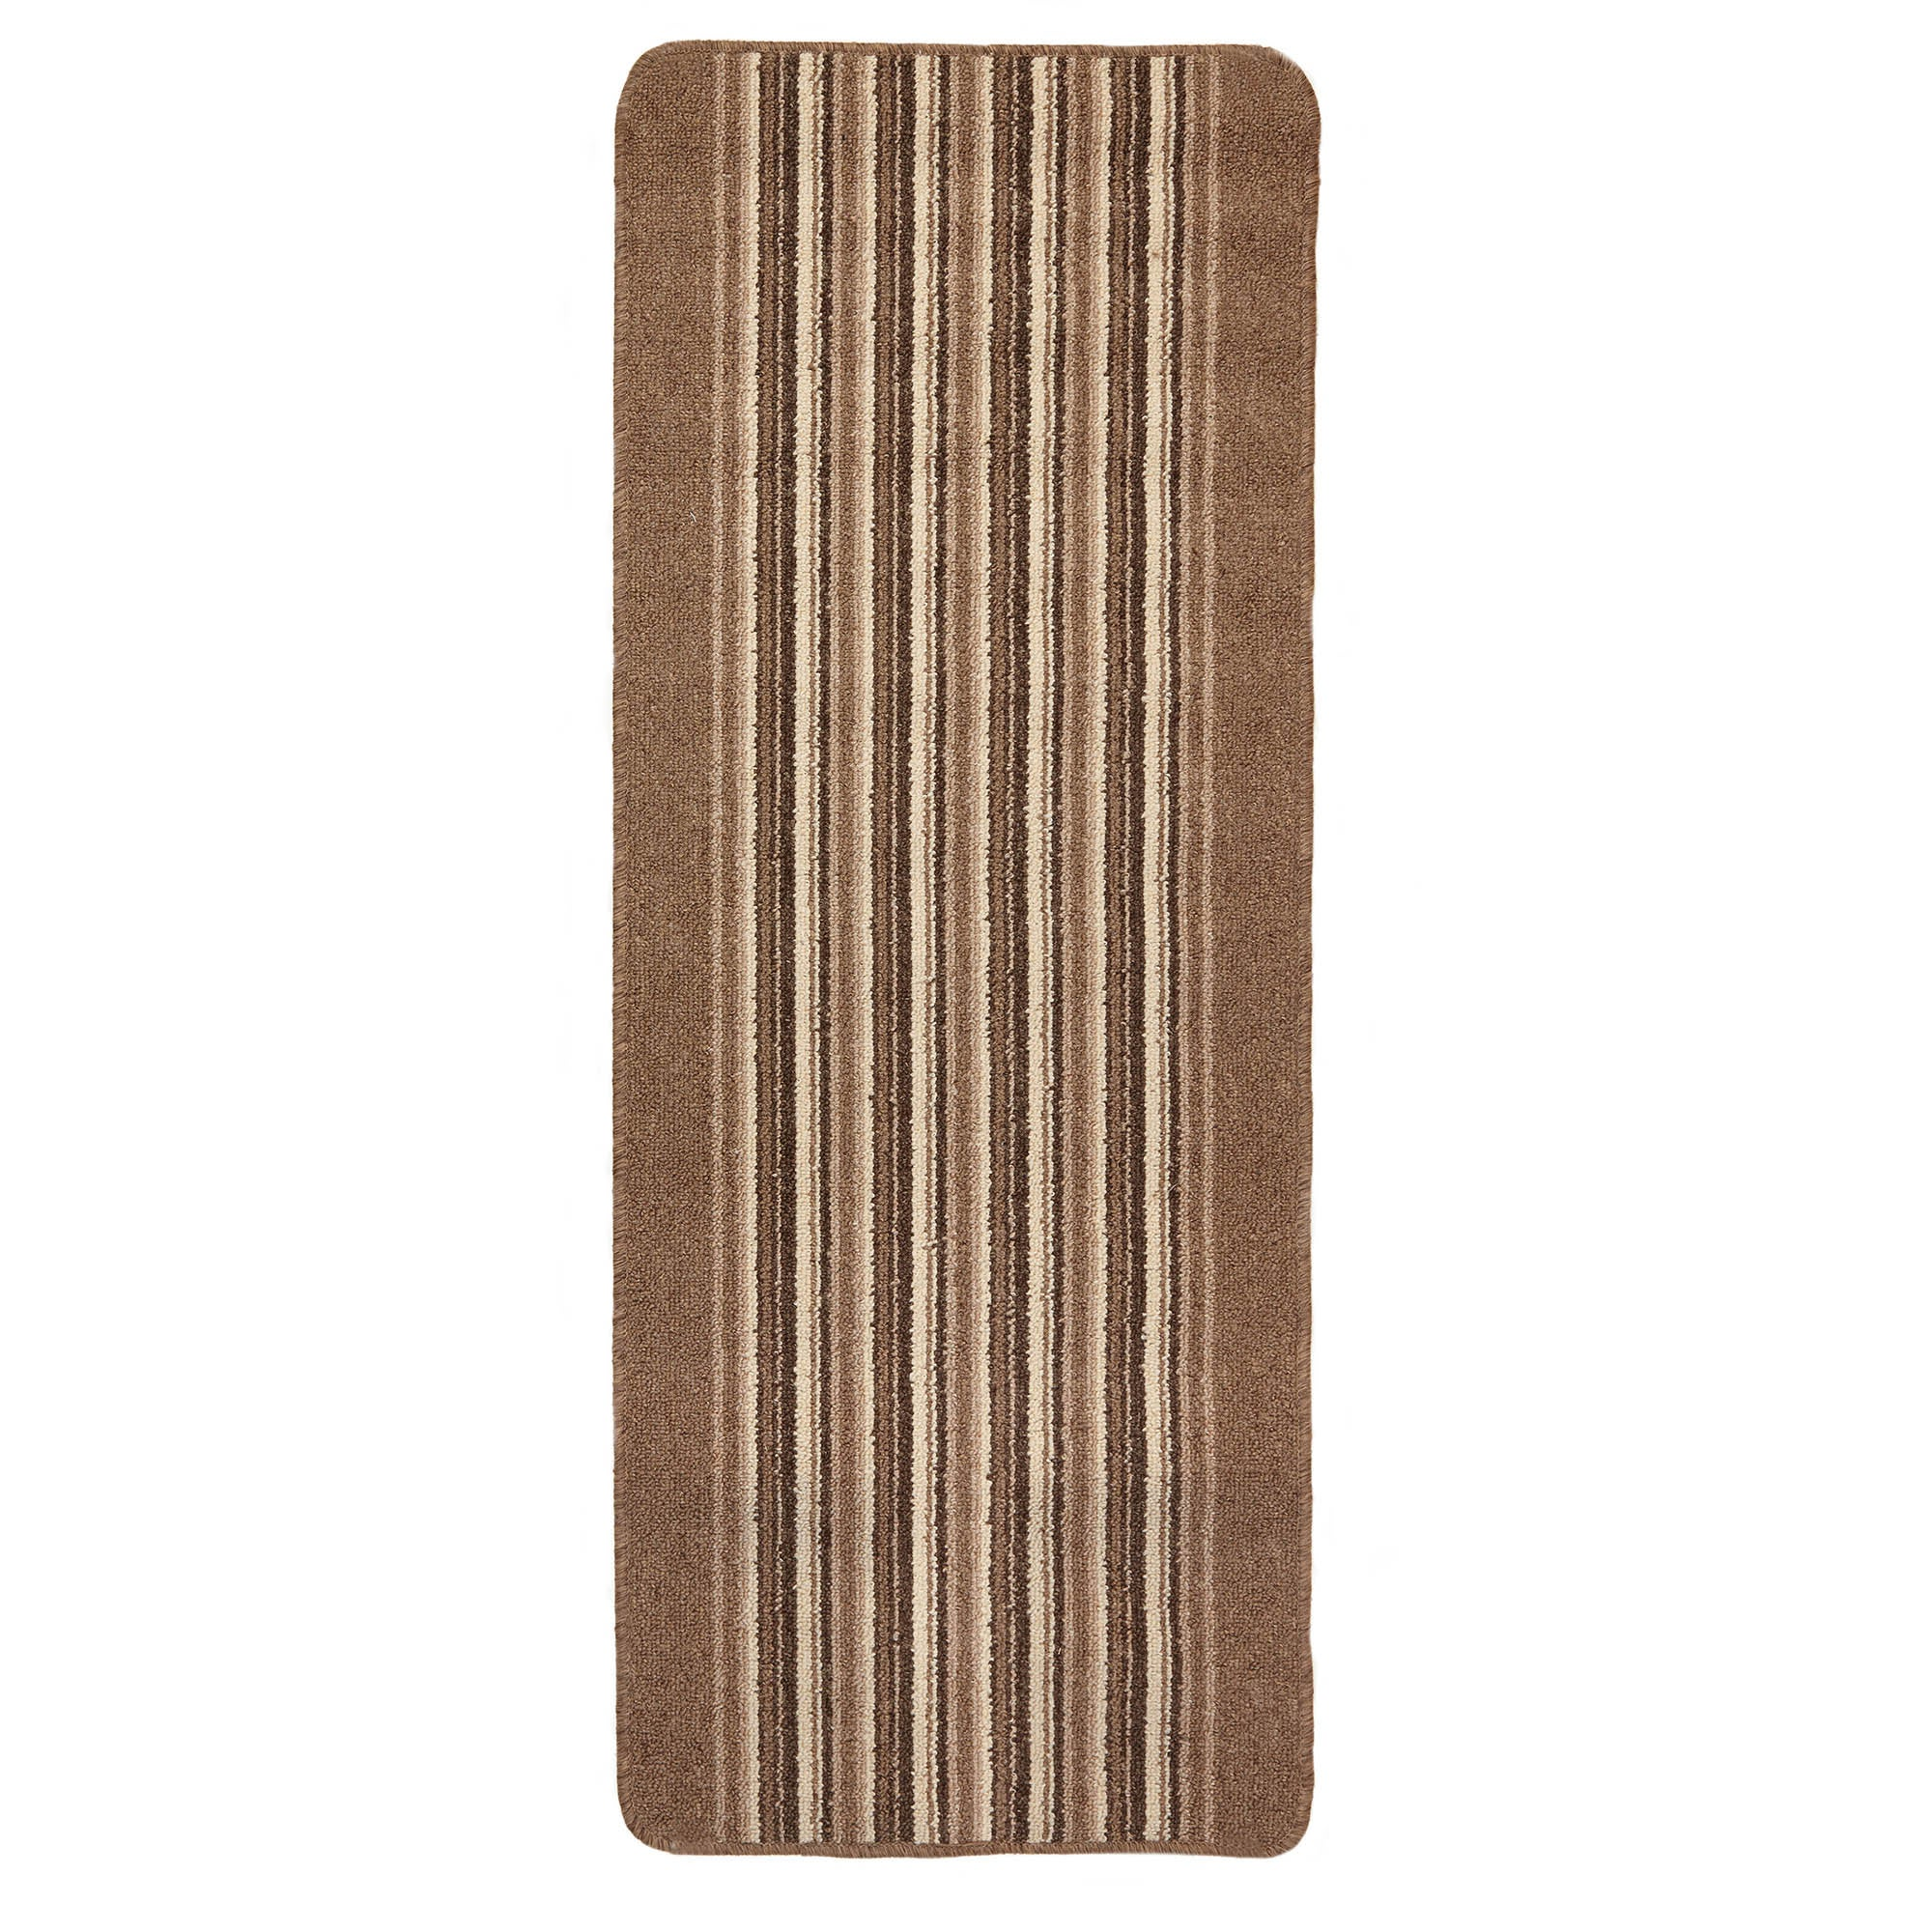 Photo of Lineage washable runner mocha brown